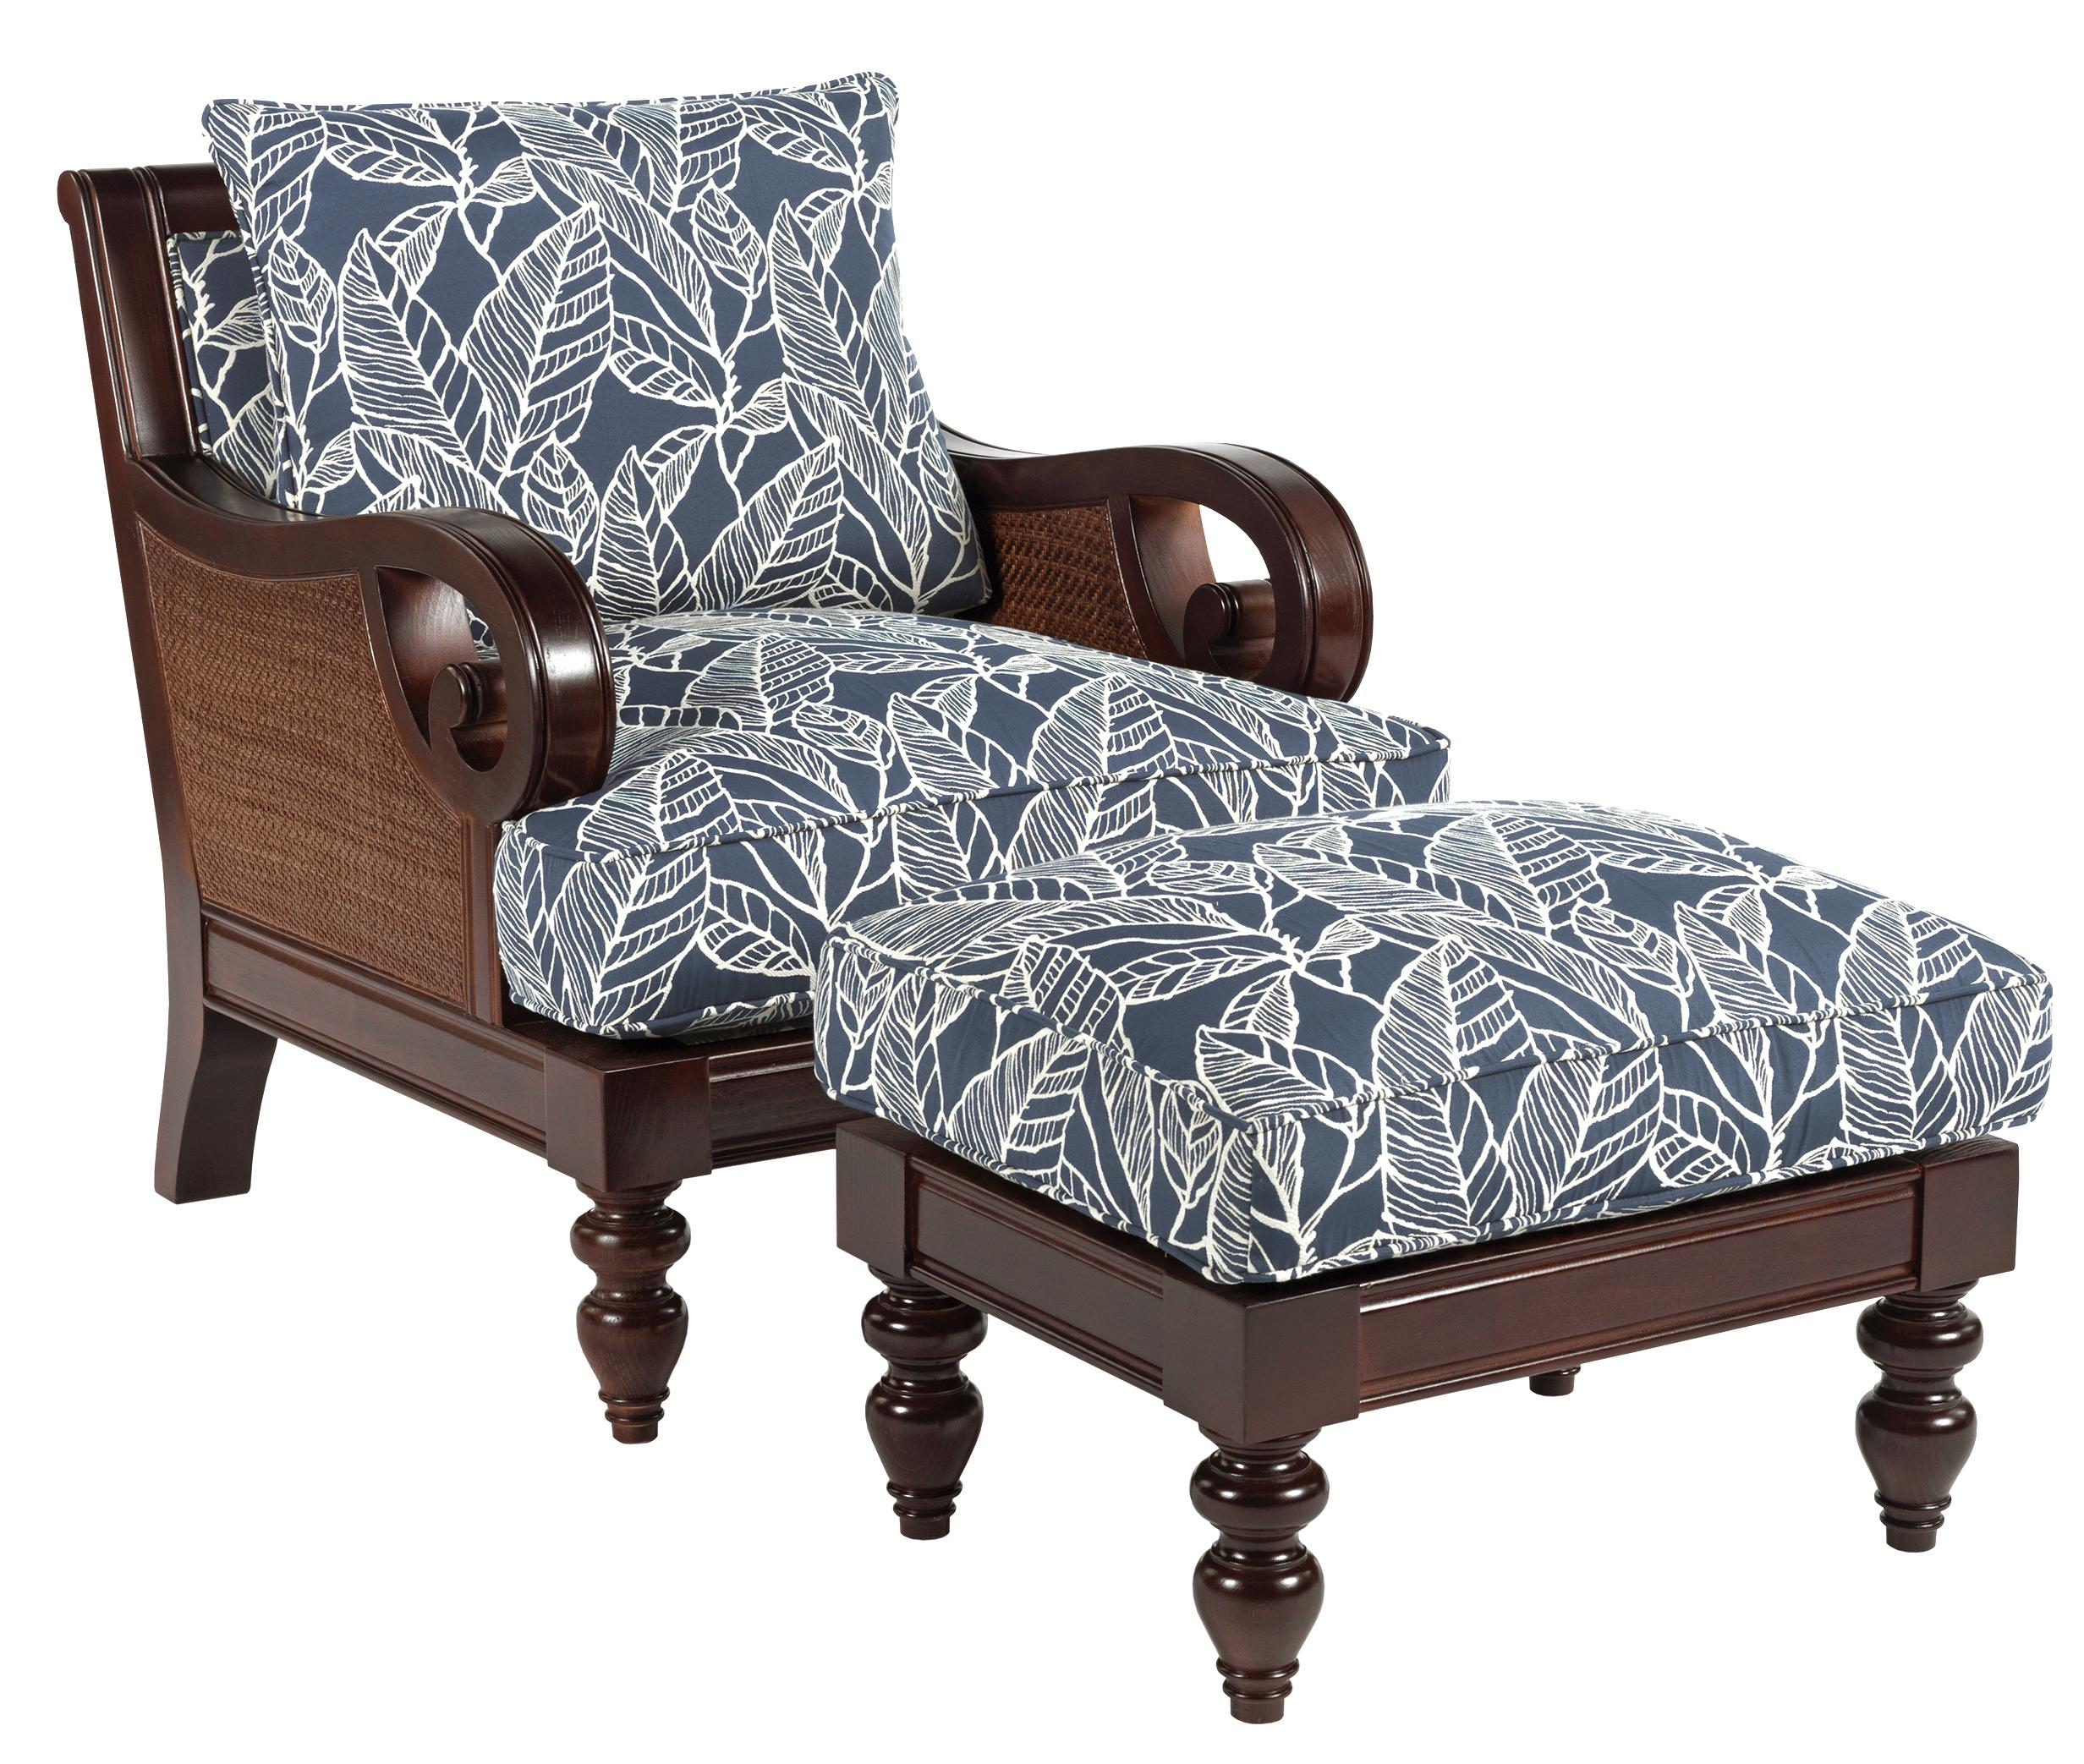 Sam Moore Chairs Sam Moore Tailynn Tropical Exposed Wood Chair And Ottoman Set